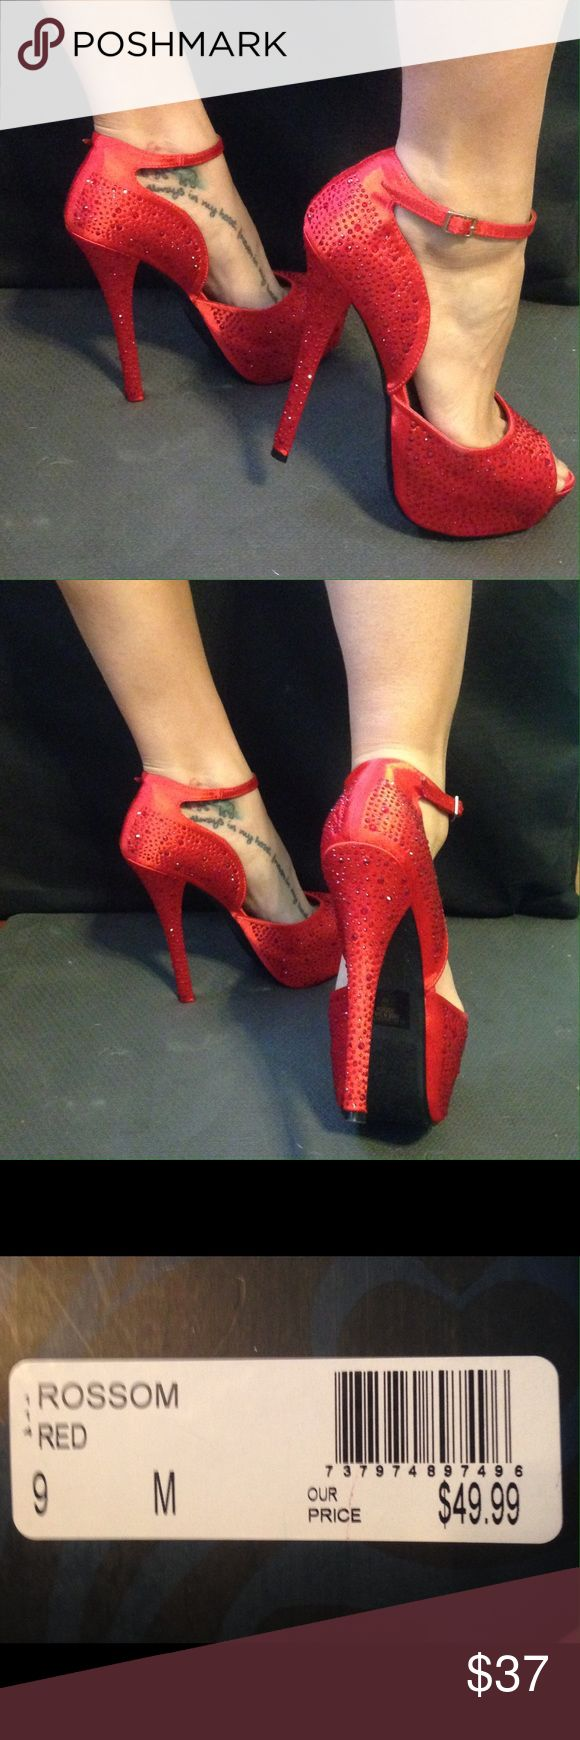 "Y-not? Red Stiletto Heels Brand: Y-not? Size:9M Euro:39 Style: Rossum Color: Red Material: Satin with rhinestones Original price:$49.99 Rhinestones all over 1.5"" platform 4.5"" heel Only worn once Y-not? Shoes Heels"